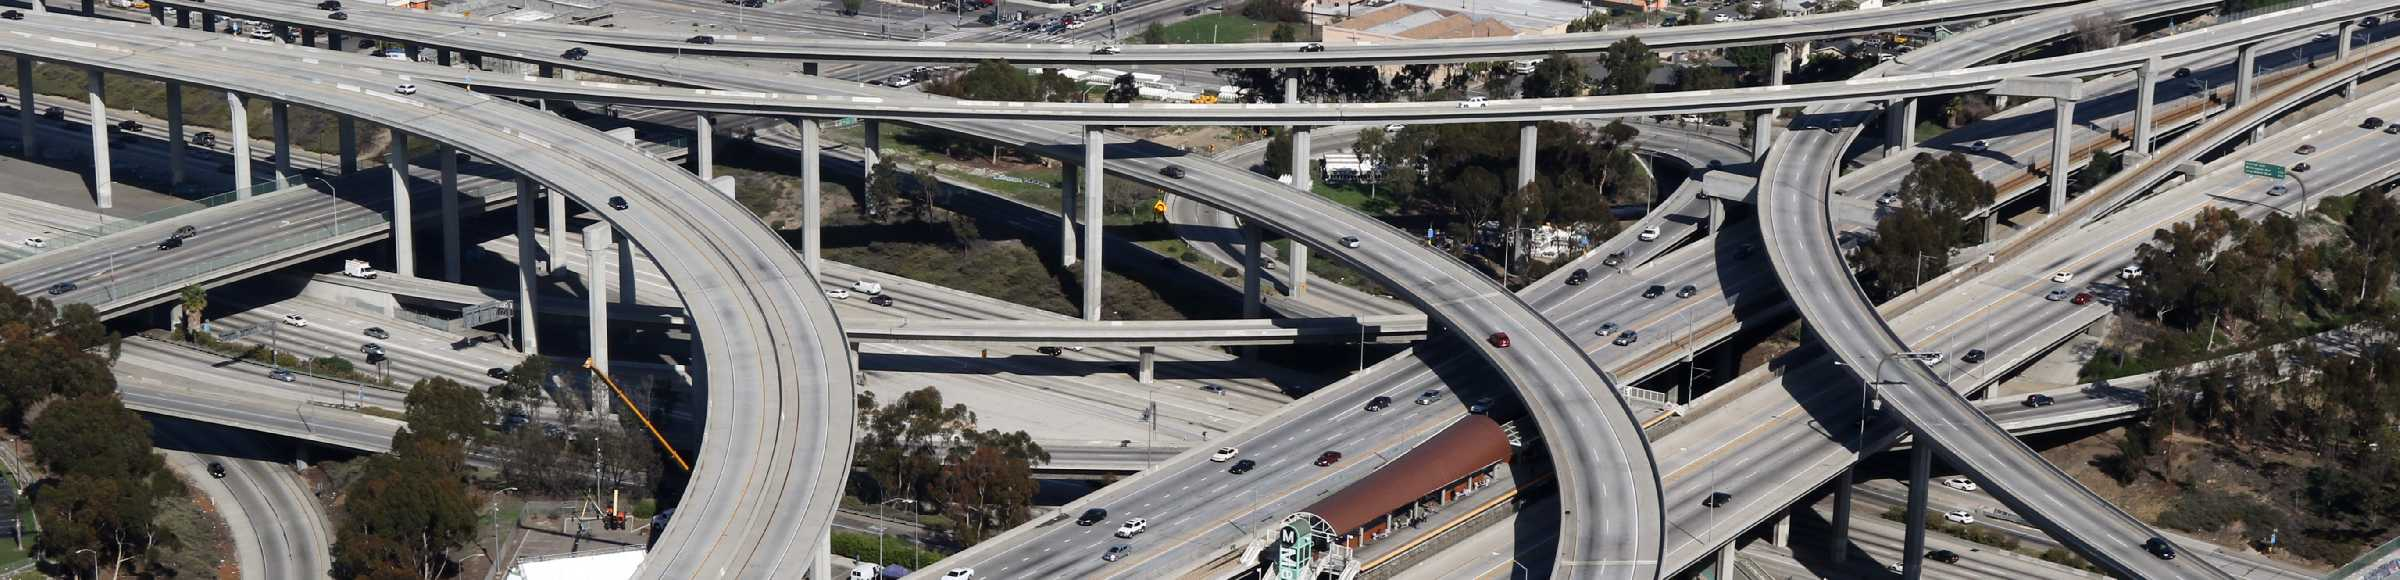 Traffic flow at the intersection- motorway Harbor Gateway North in Los Angeles in California, United States of America